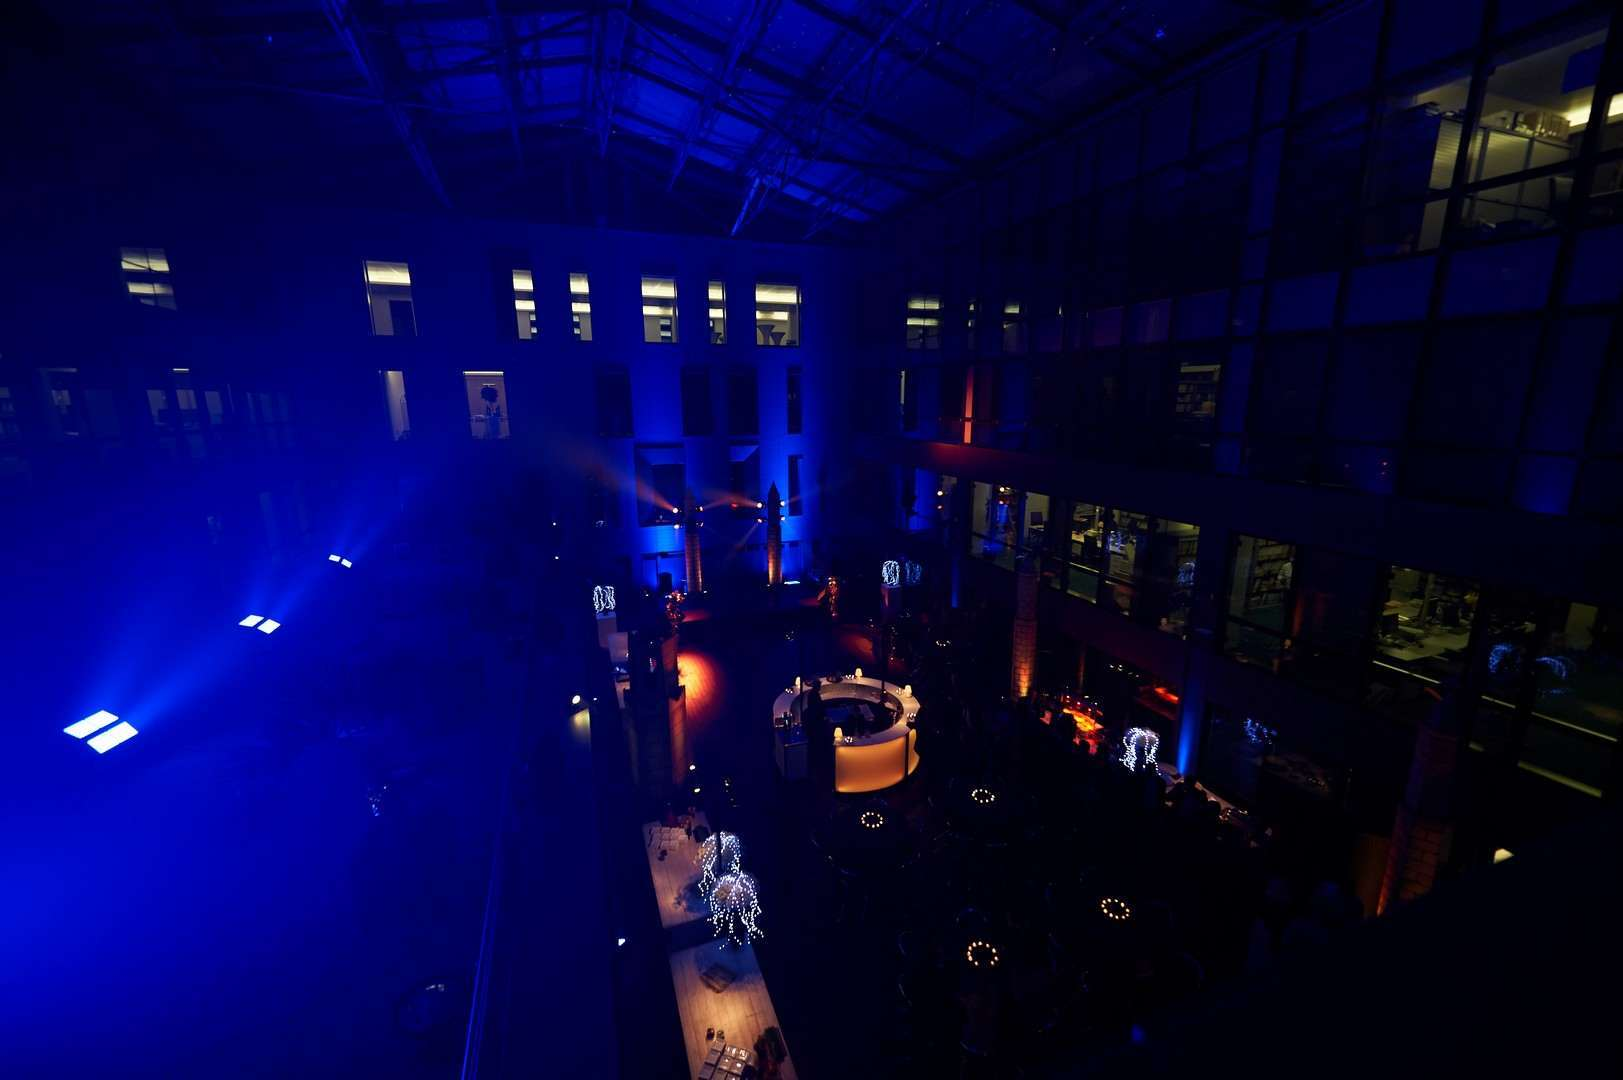 xmas-degroof-petercam-2016-events-lux-project